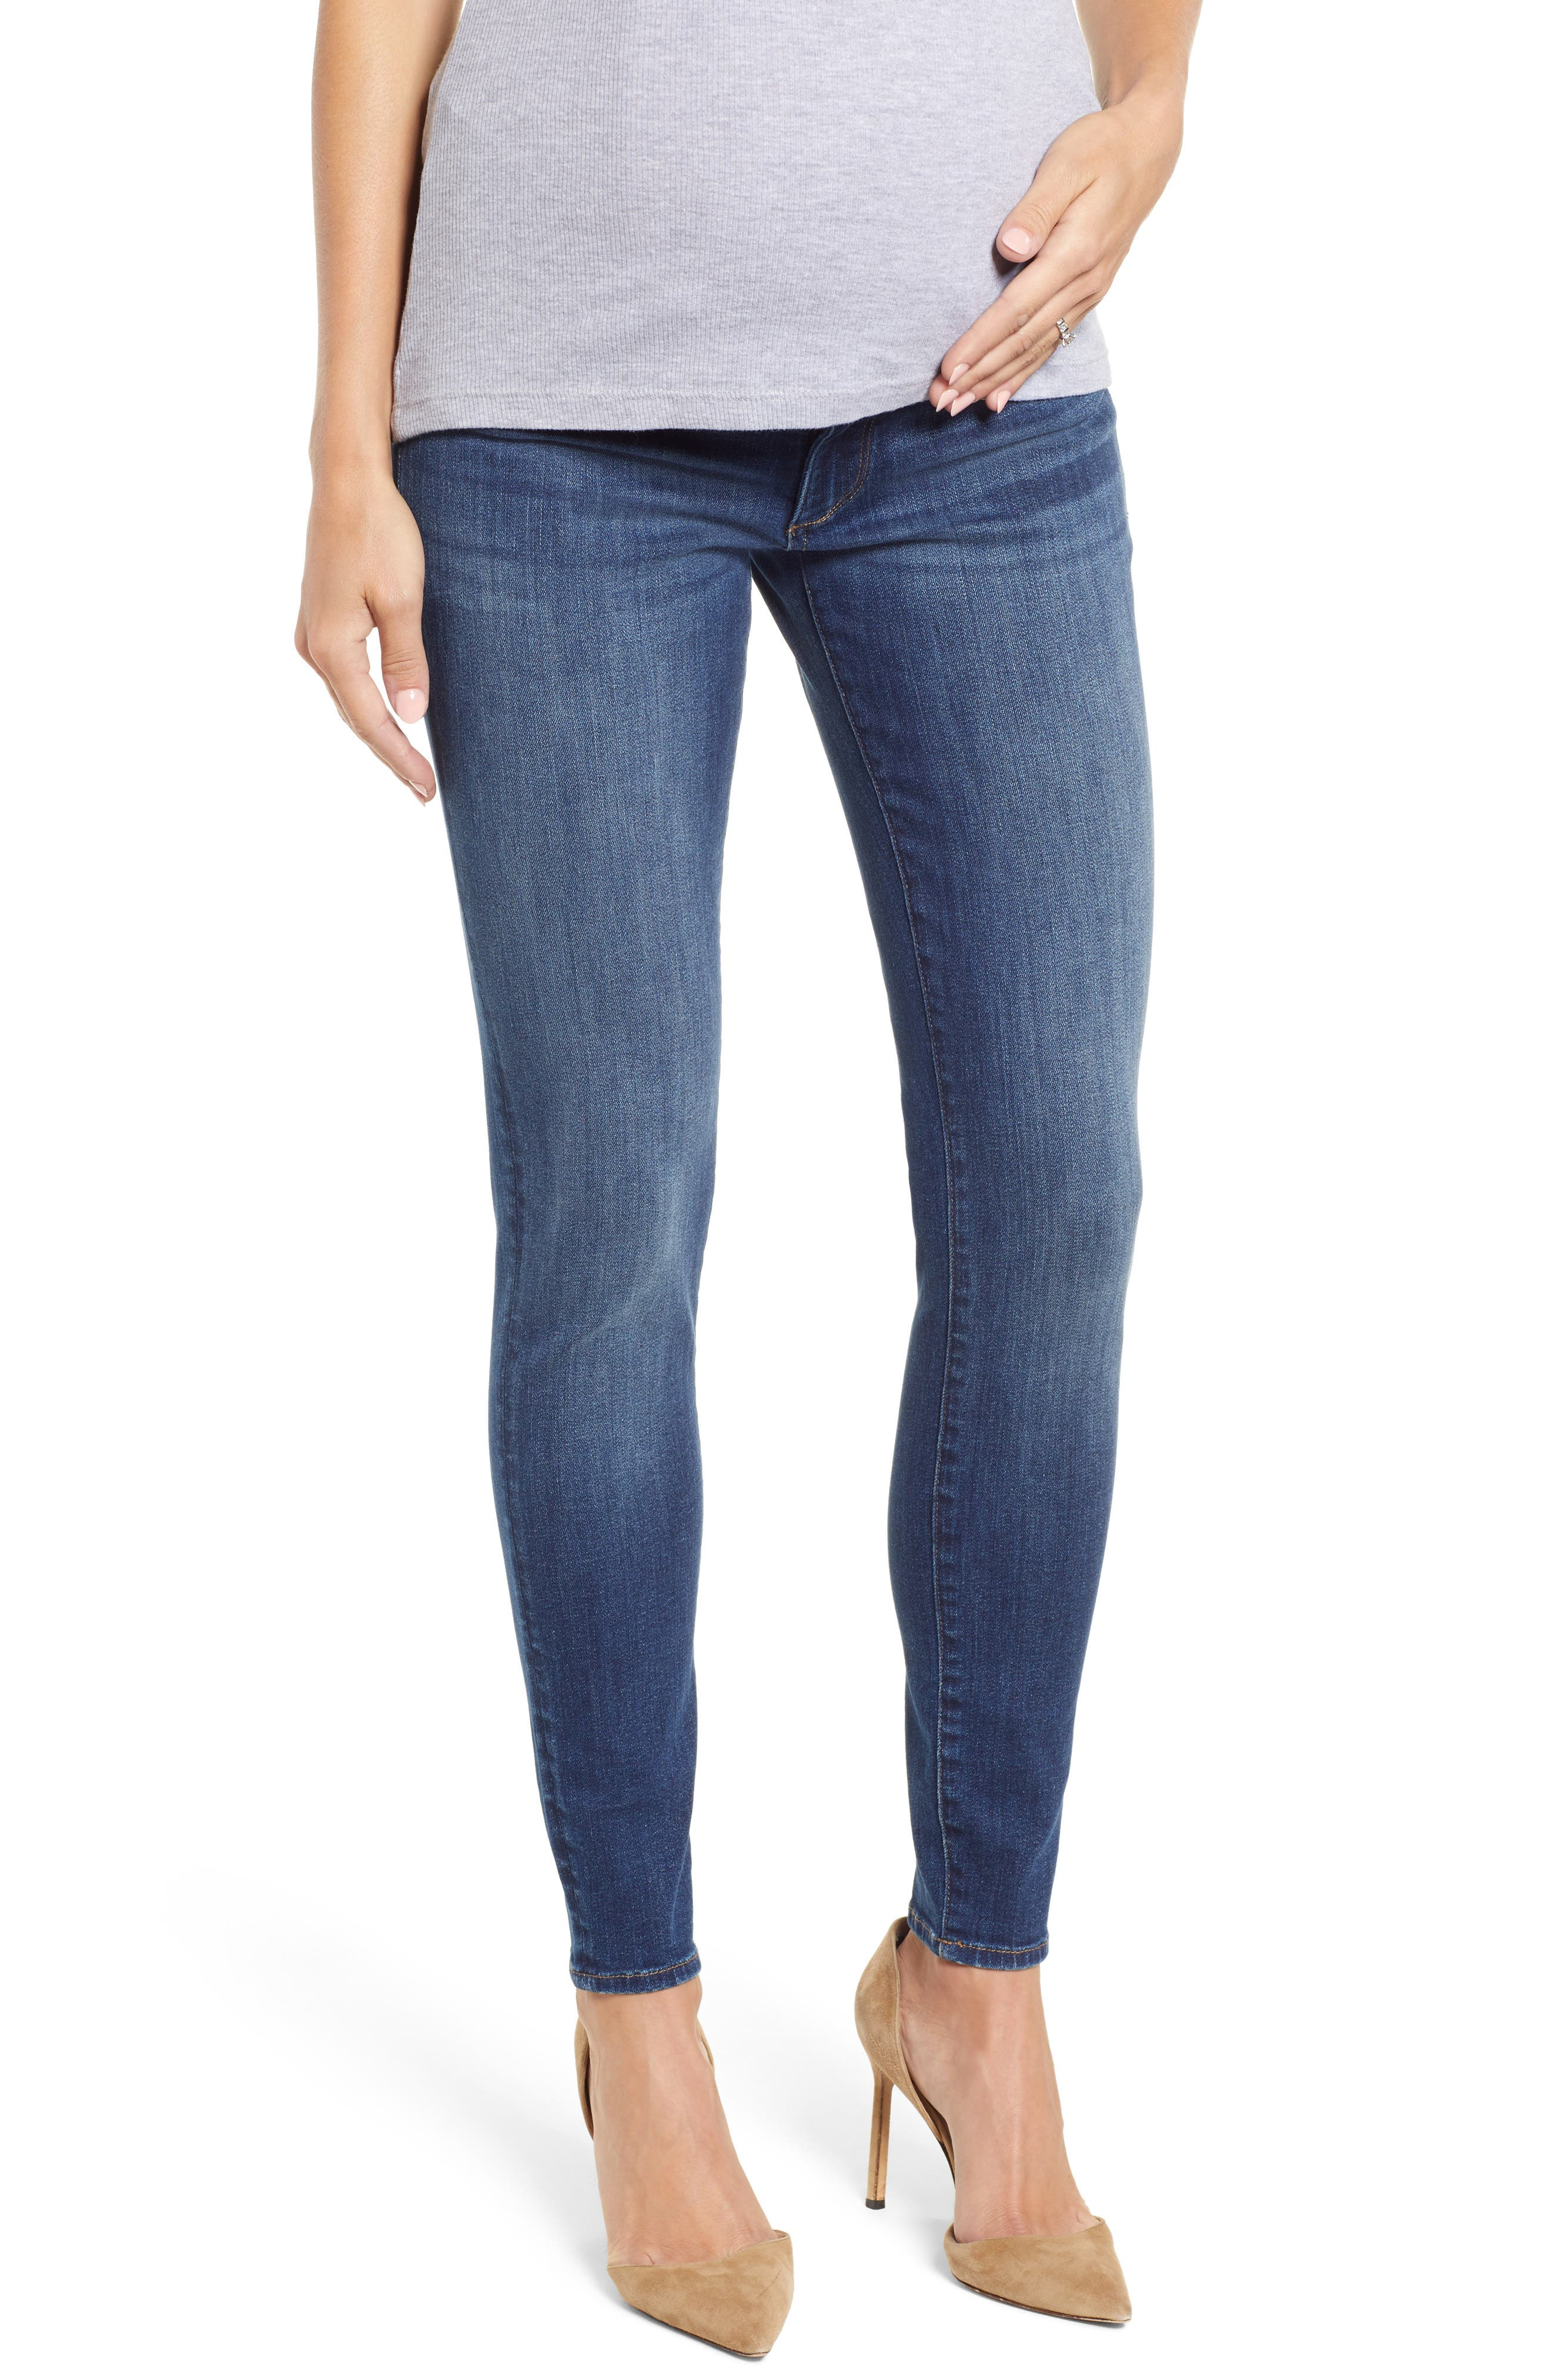 Florence Maternity Skinny Jeans,                         Main,                         color, 001